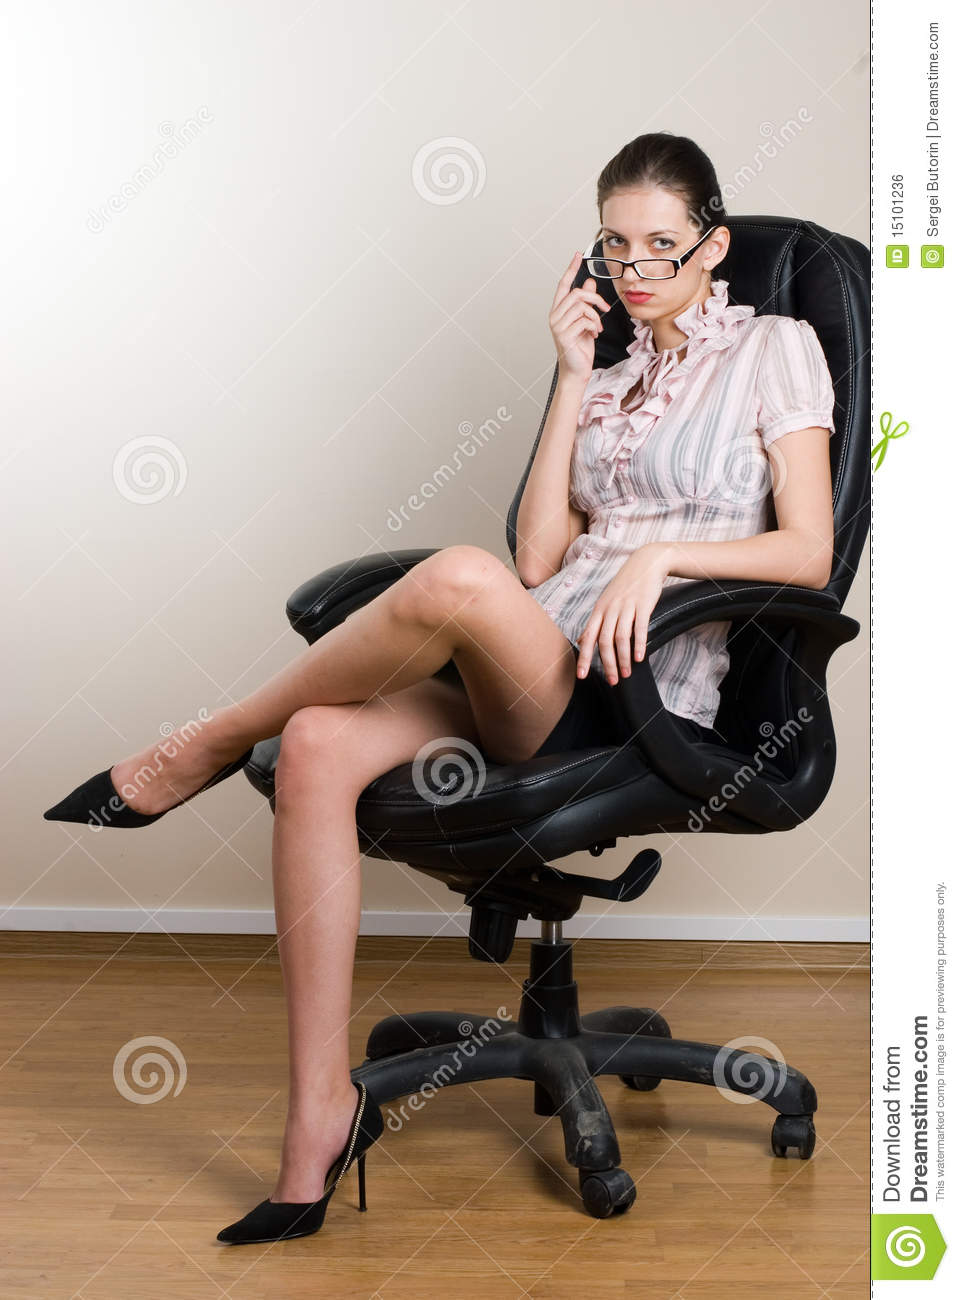 Ladyboss In Office Royalty Free Stock Image  Image 15101236